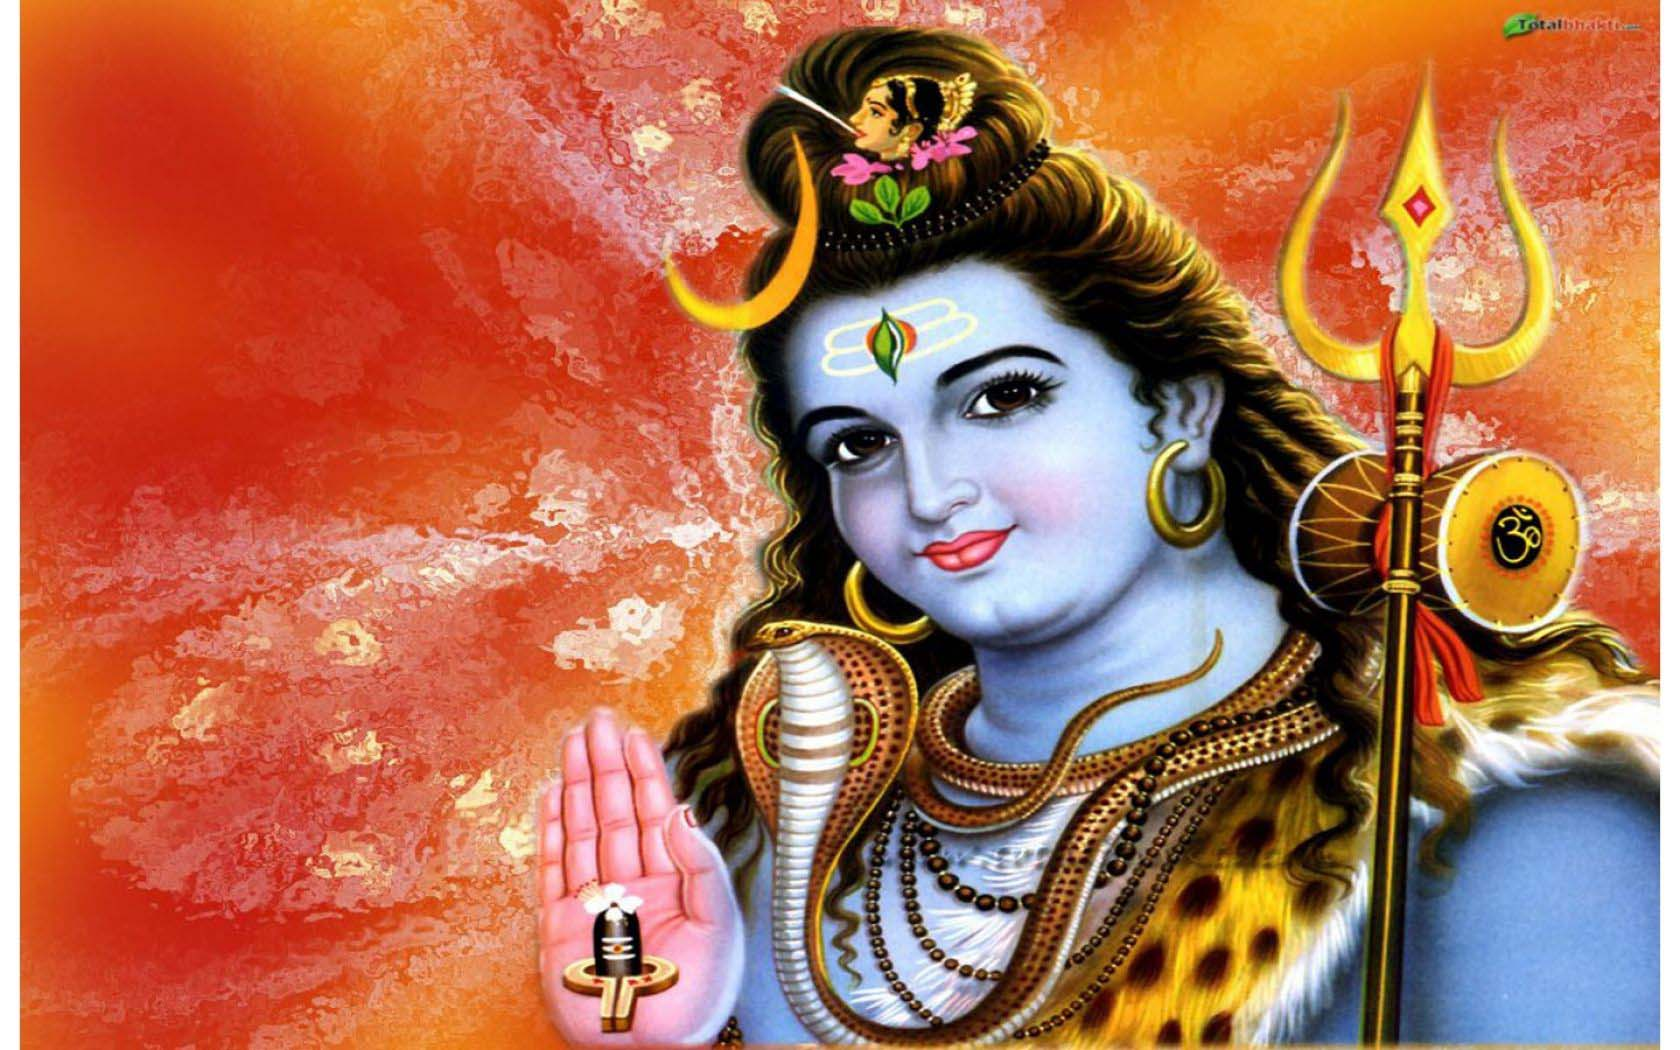 Lord Shiva Wallpapers HD Wallpapers for Desktop   2014 1680x1050